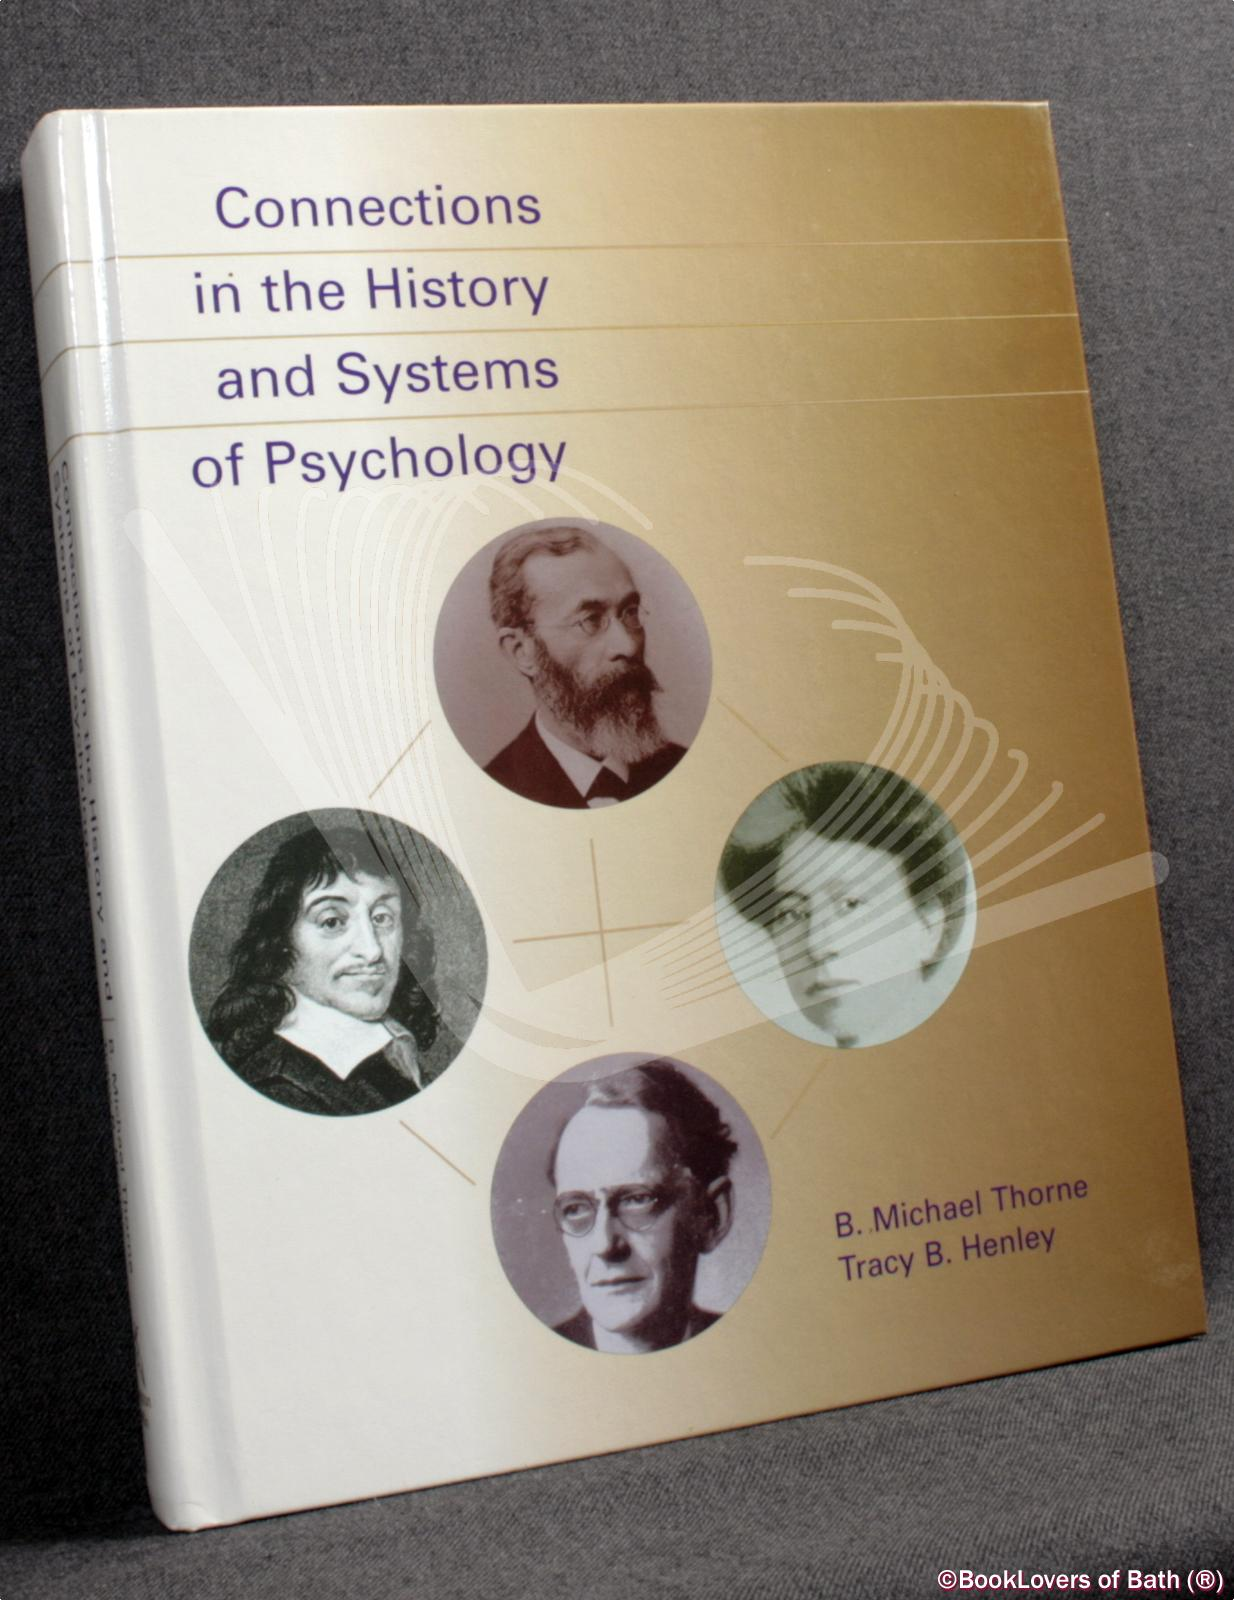 Connections in the History and Systems of Psychology - B. Michael Thorne & Tracy B. Henley